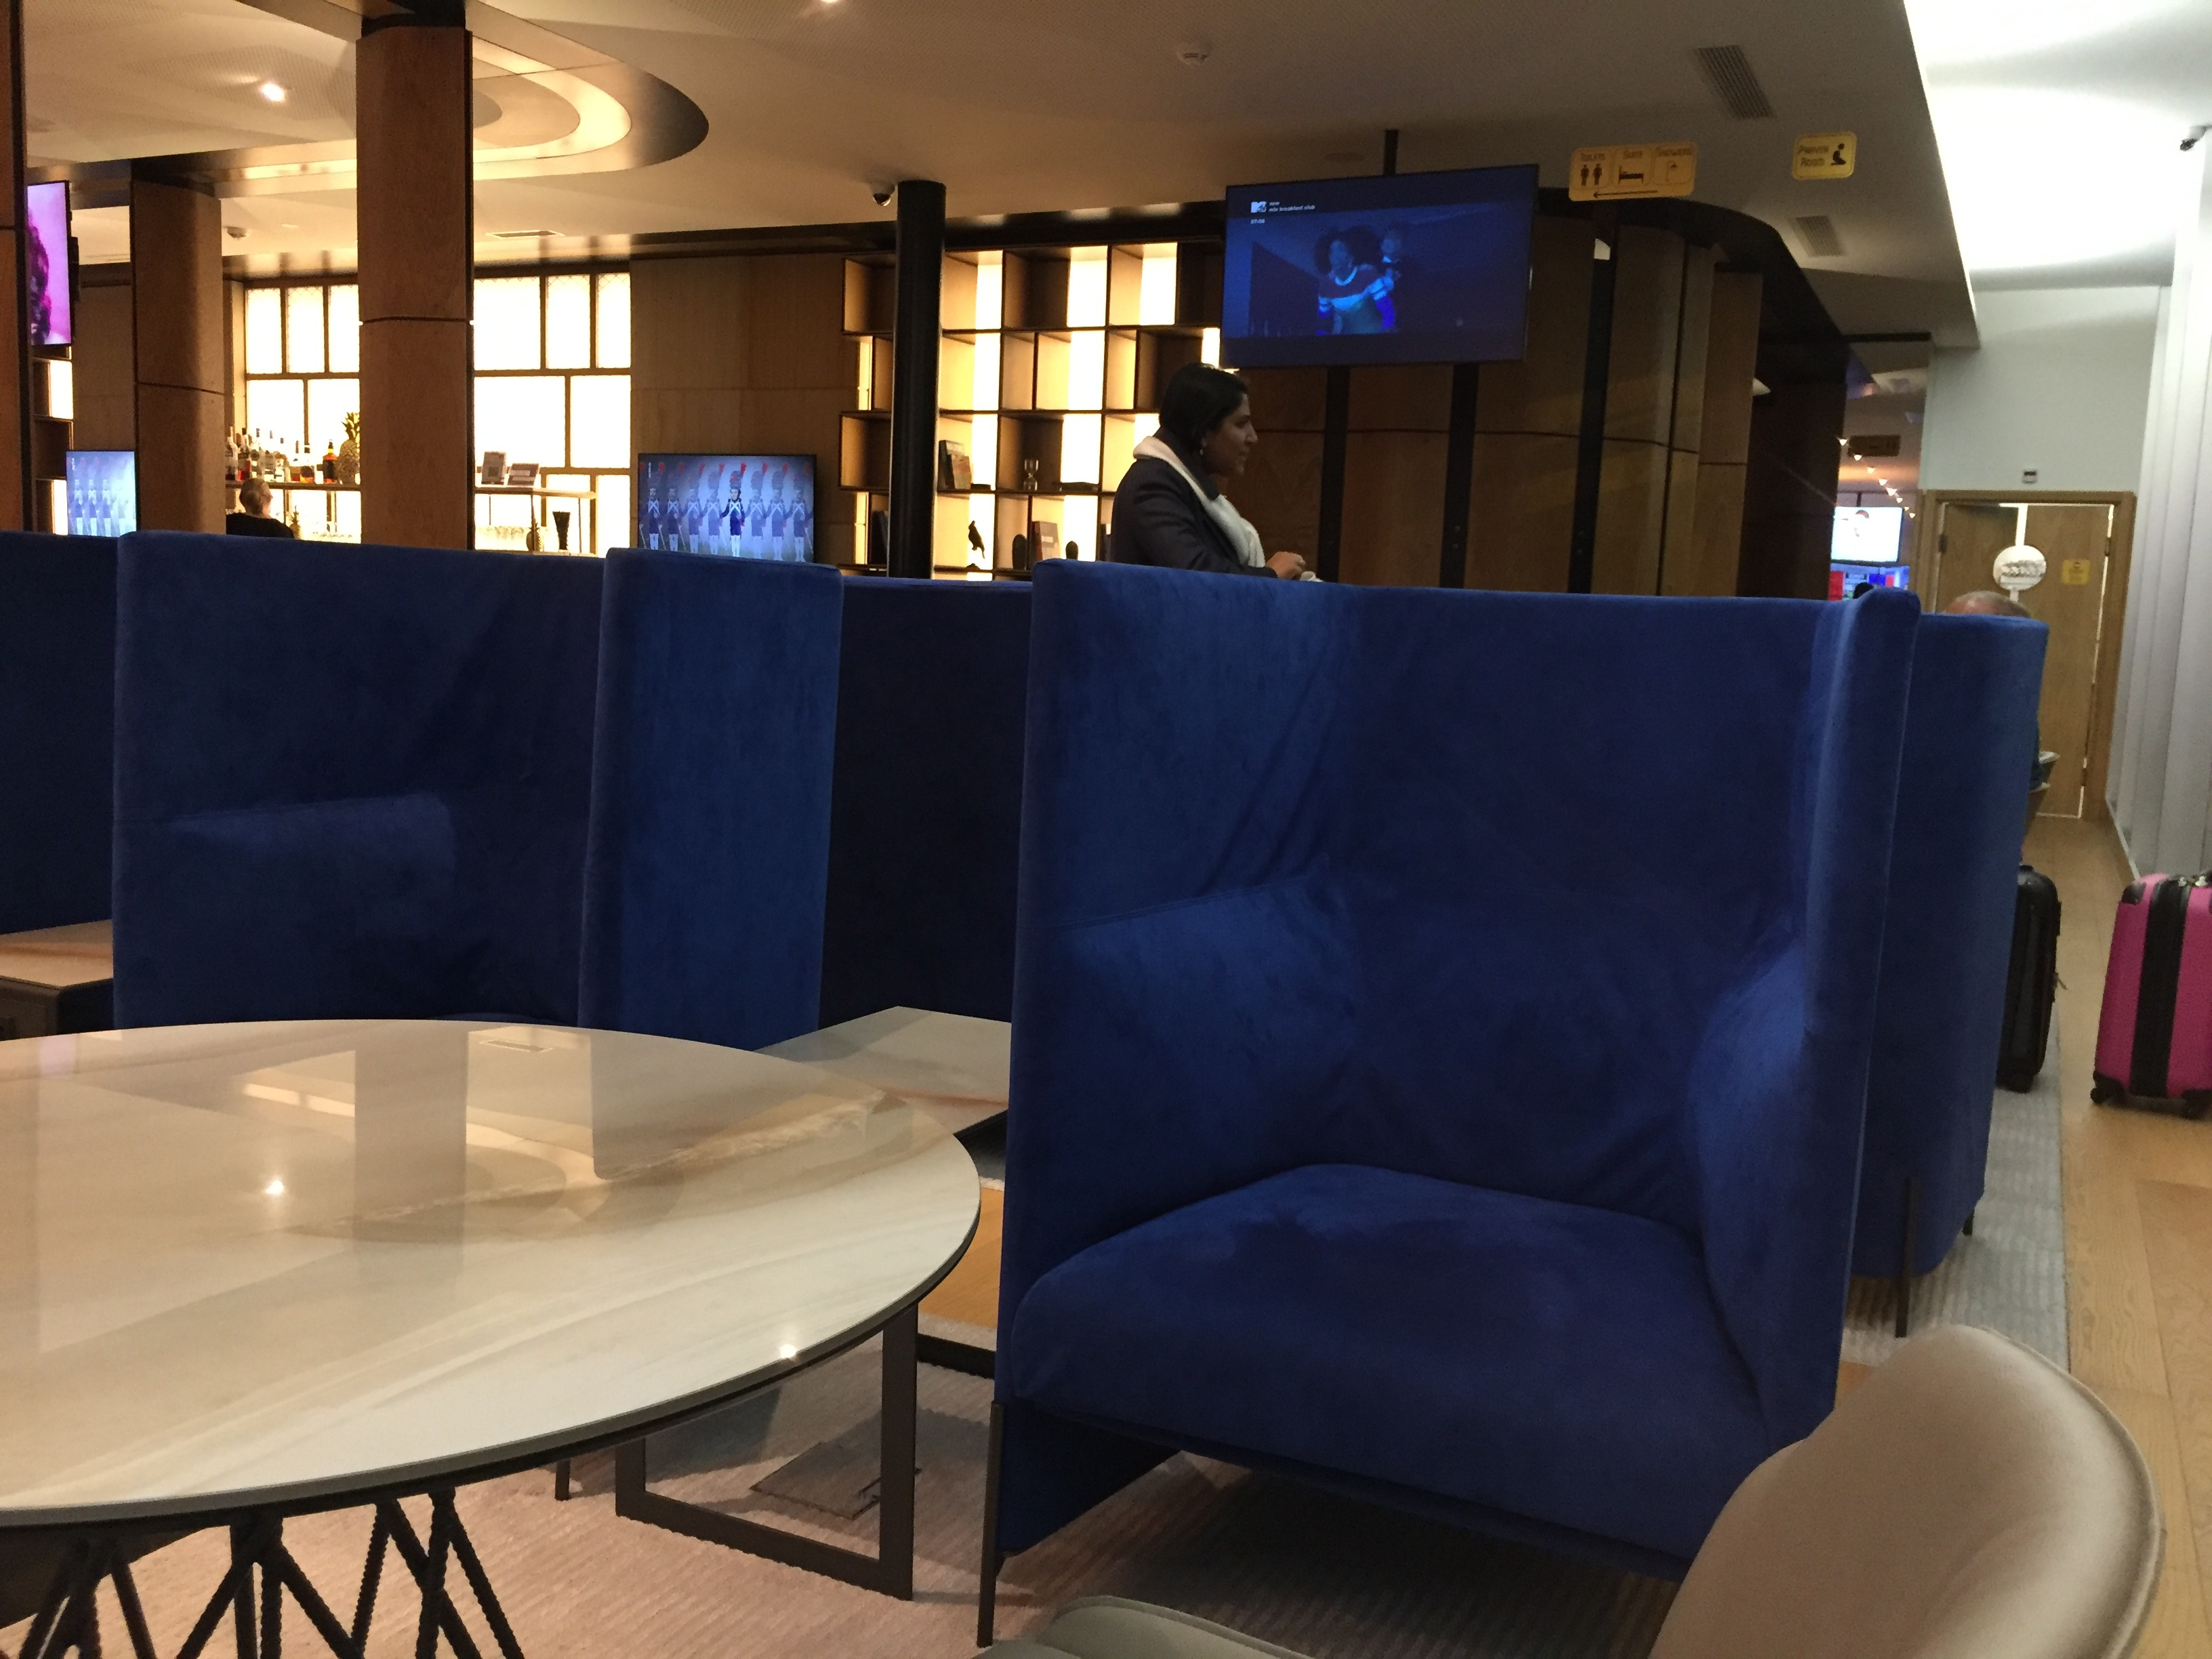 Another sitting lounge area - Zurich Terminal E